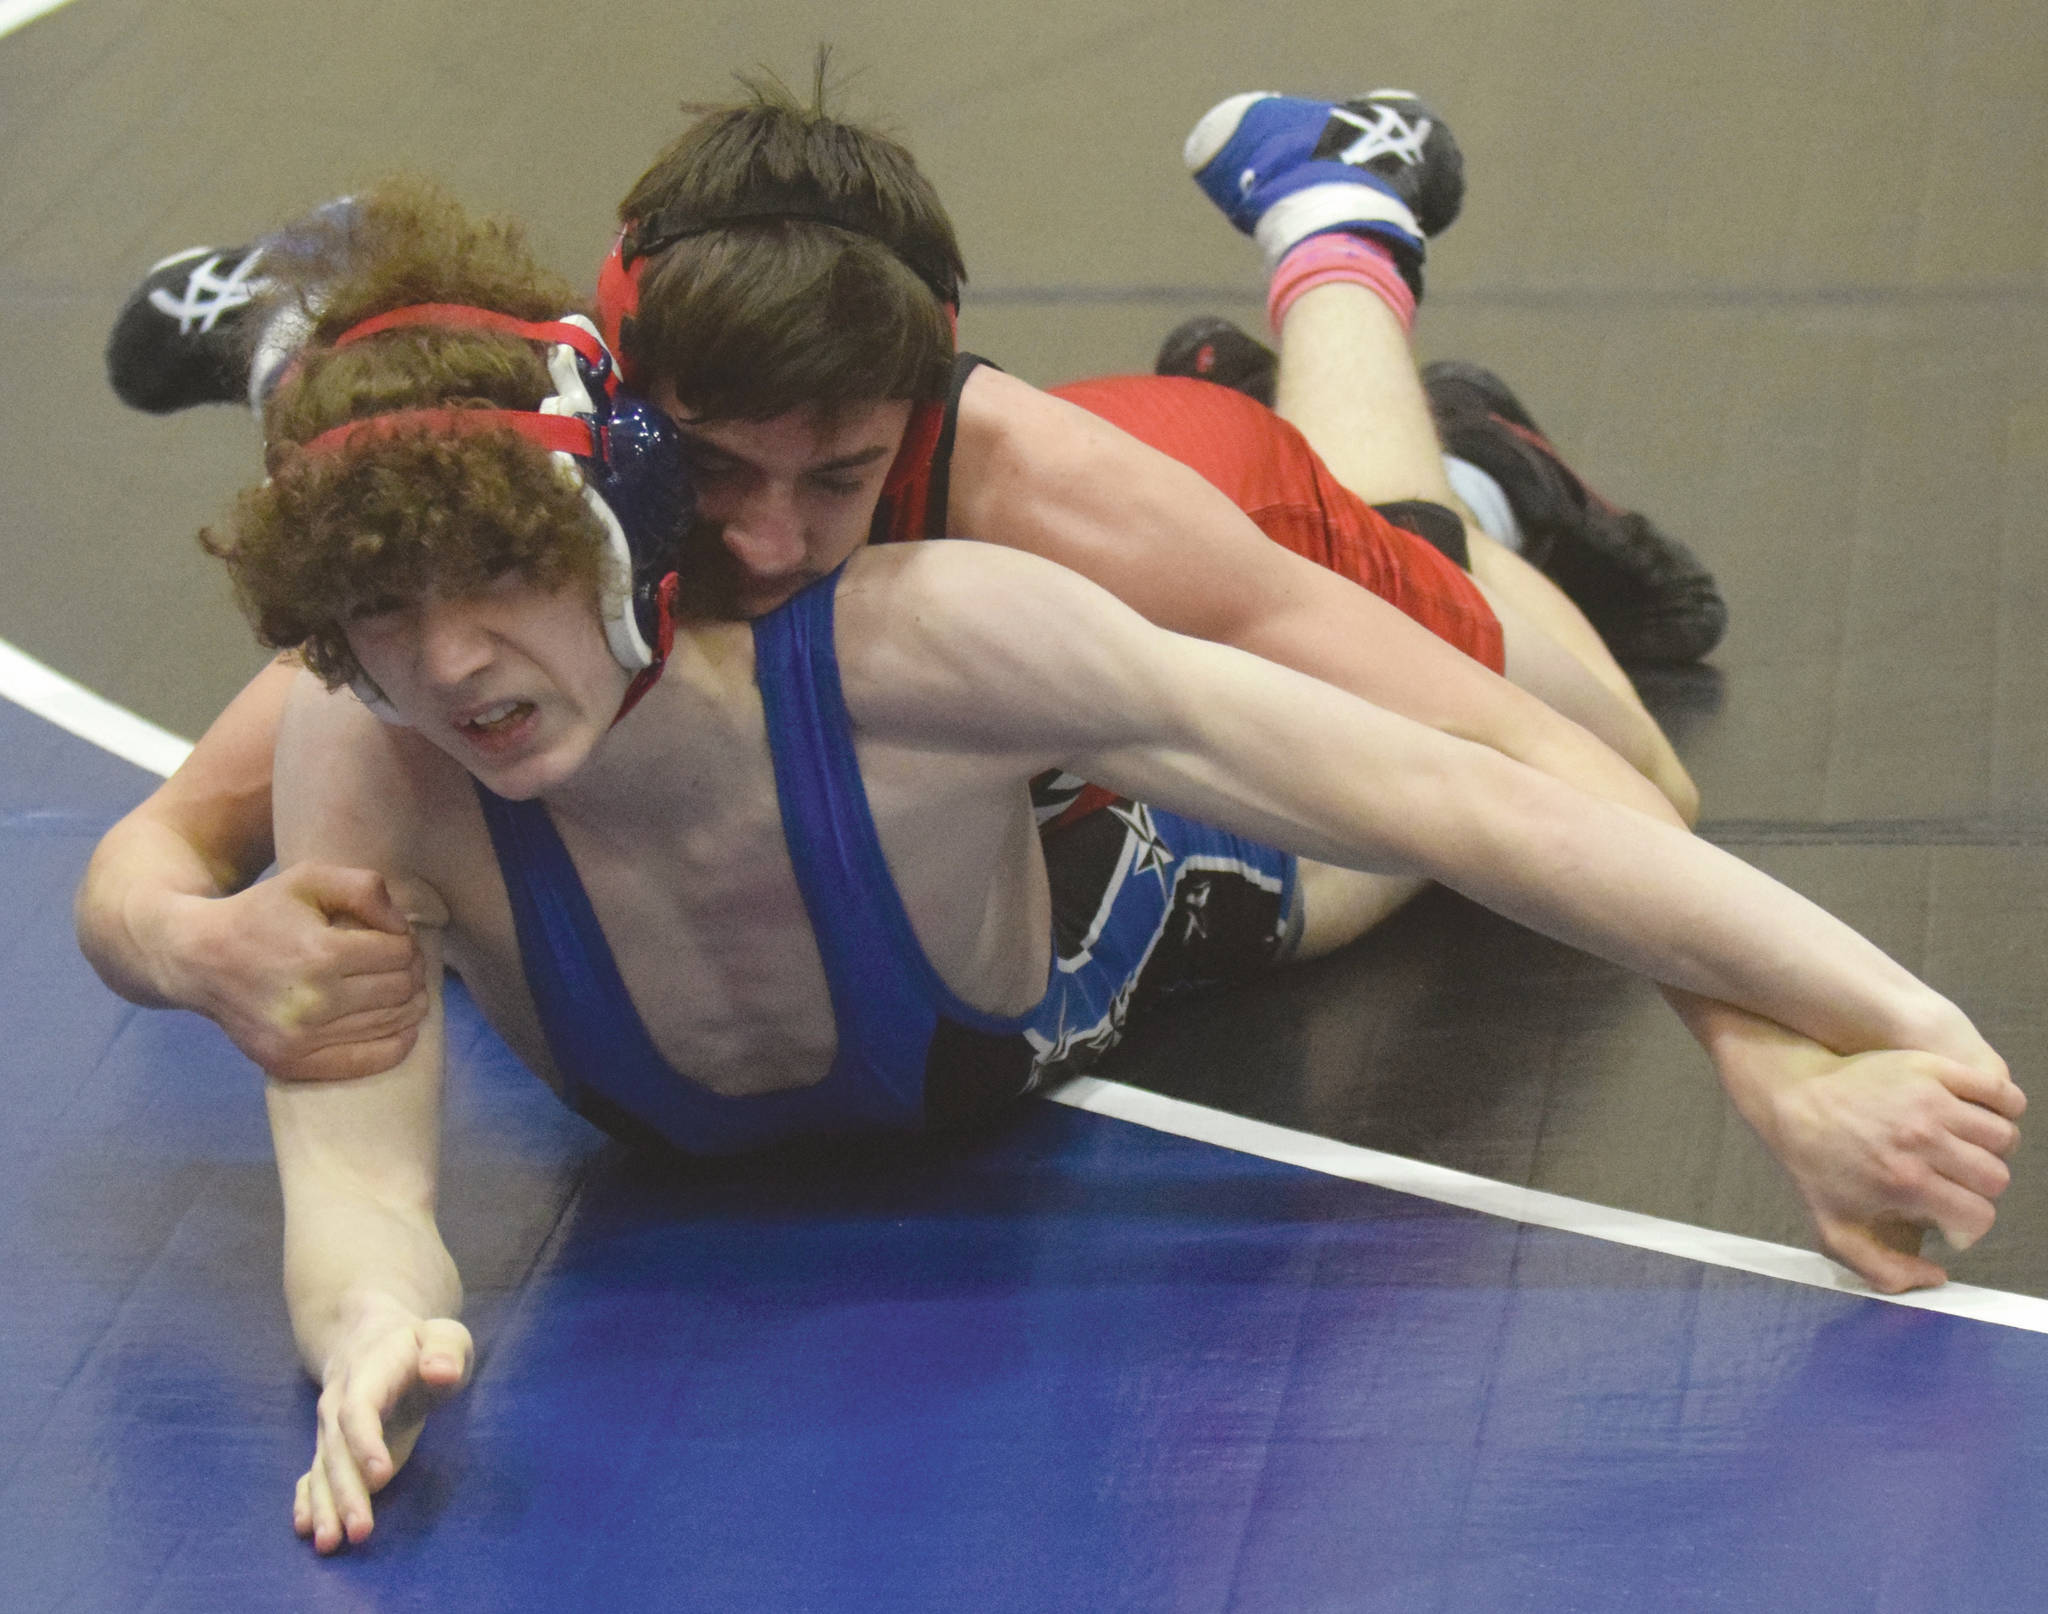 Kenai Central's Owen Whicker controls Soldotna's Cassius Miller on the way to a 7-5 victory Friday, April 2, 2021, at Soldotna High School in Soldotna, Alaska. (Photo by Jeff Helminiak/Peninsula Clarion)